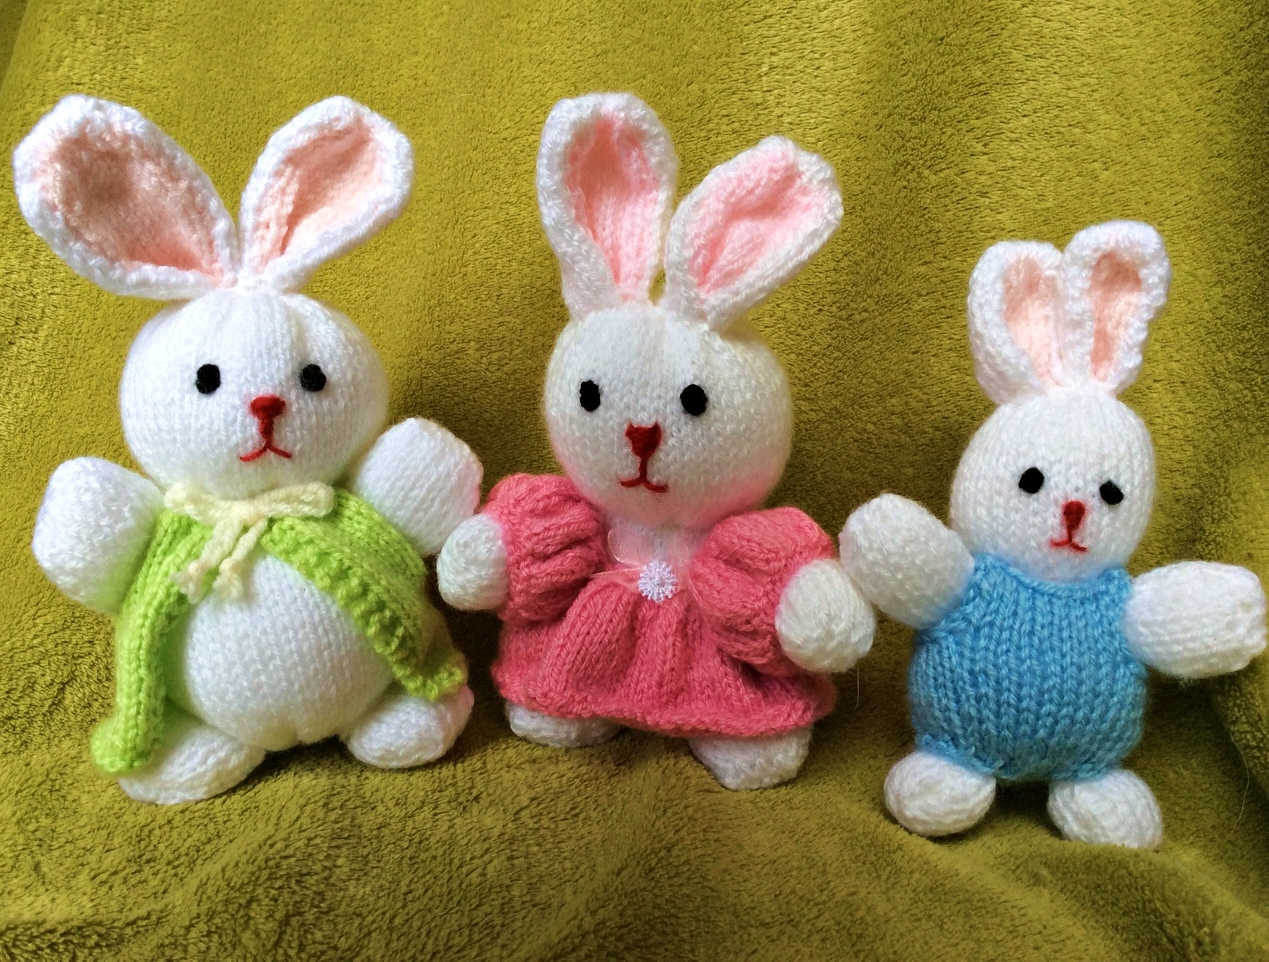 SOLD! The bunny family and baby bunny brothers have gone to their new warren this autumn!